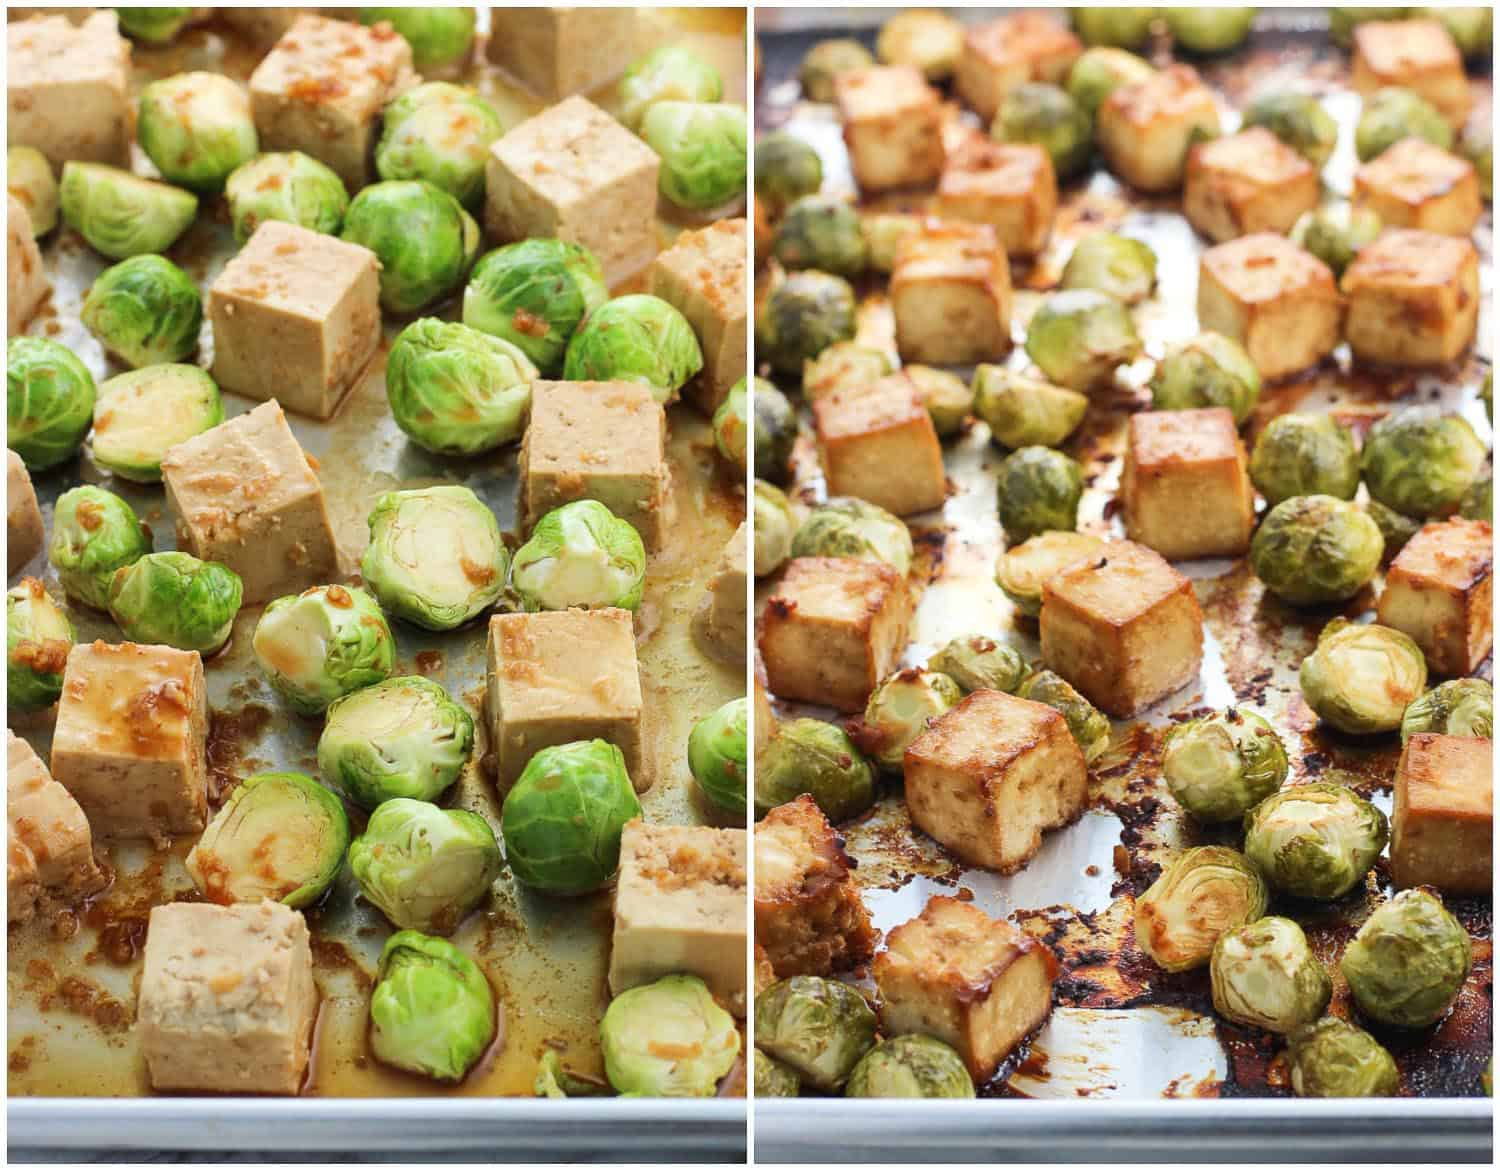 A side-by-side image of tofu and brussels sprouts on a large metal sheet pan before baking (left) and after (right)